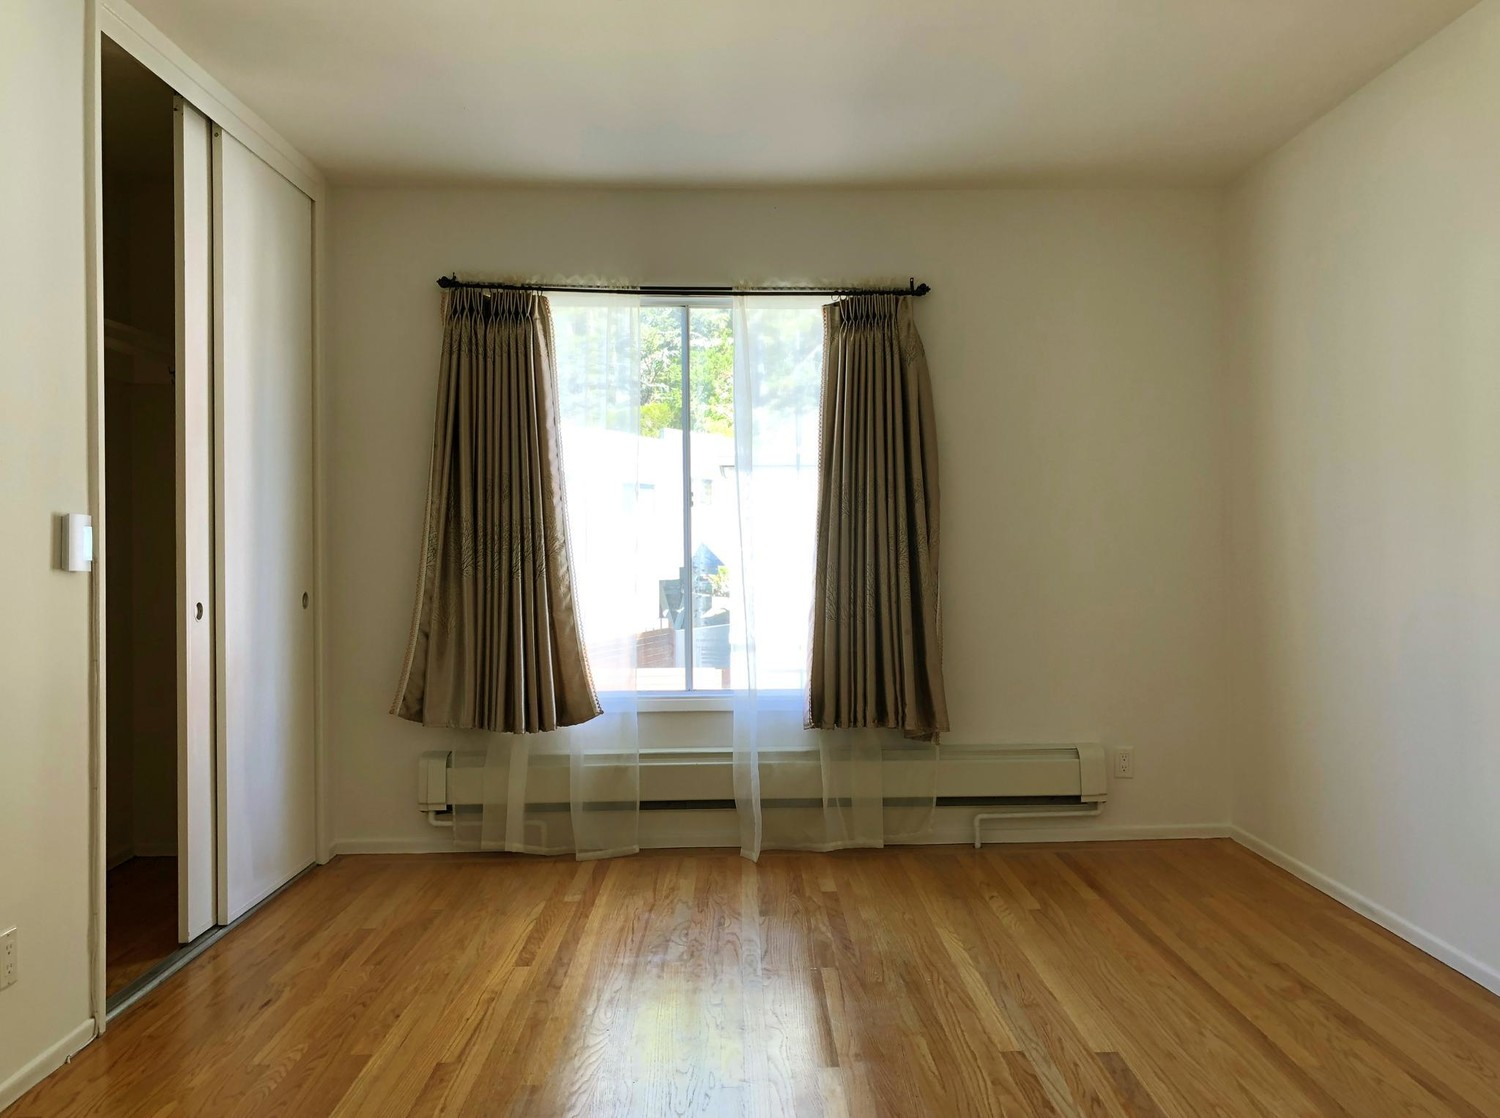 The master bedroom with a private bathroom is available for rent